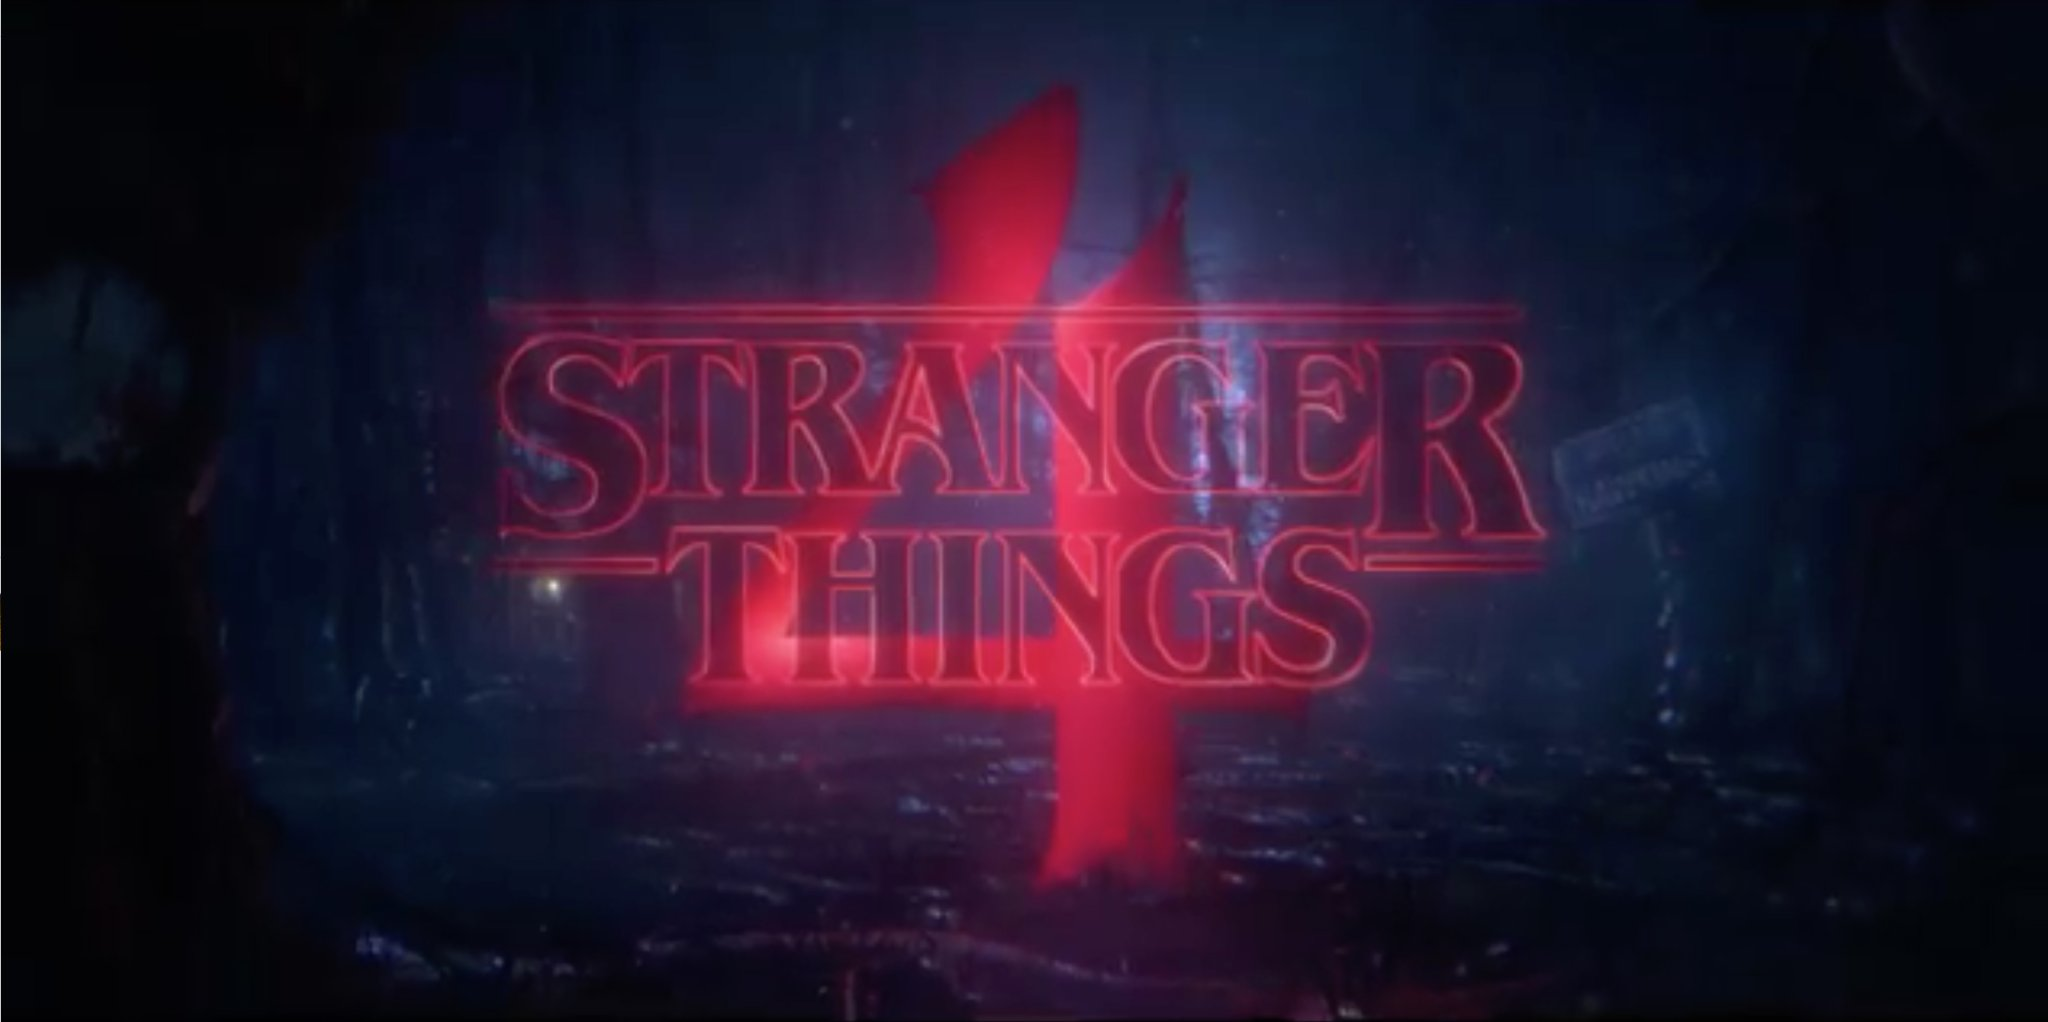 Stranger Things Season 4: Concerns About Sexualizing The Underage Cast